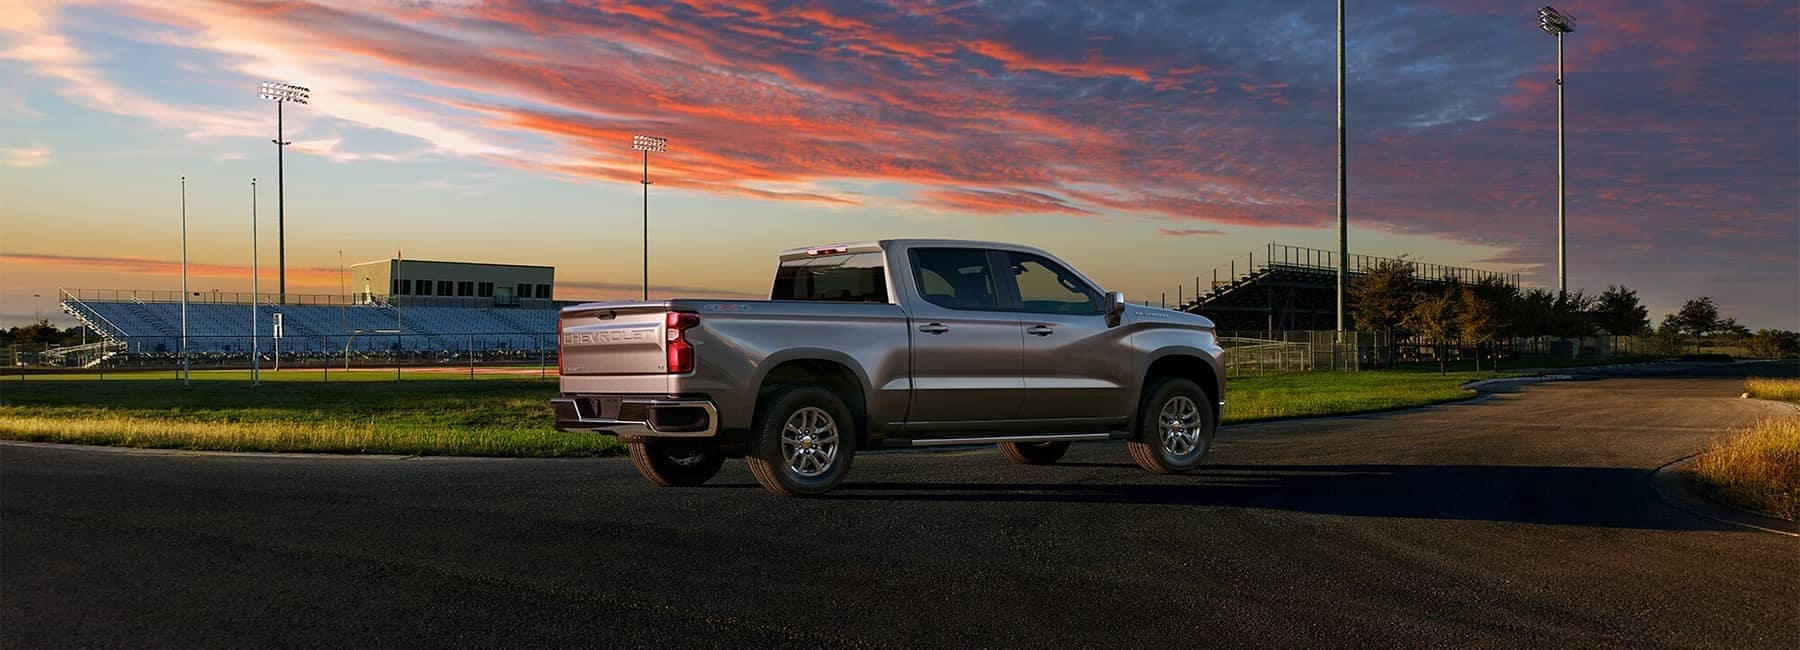 2020-Silverado-4x4-in-Satin-Steel-Metallic-at-Football-Stadium-with-Sunset